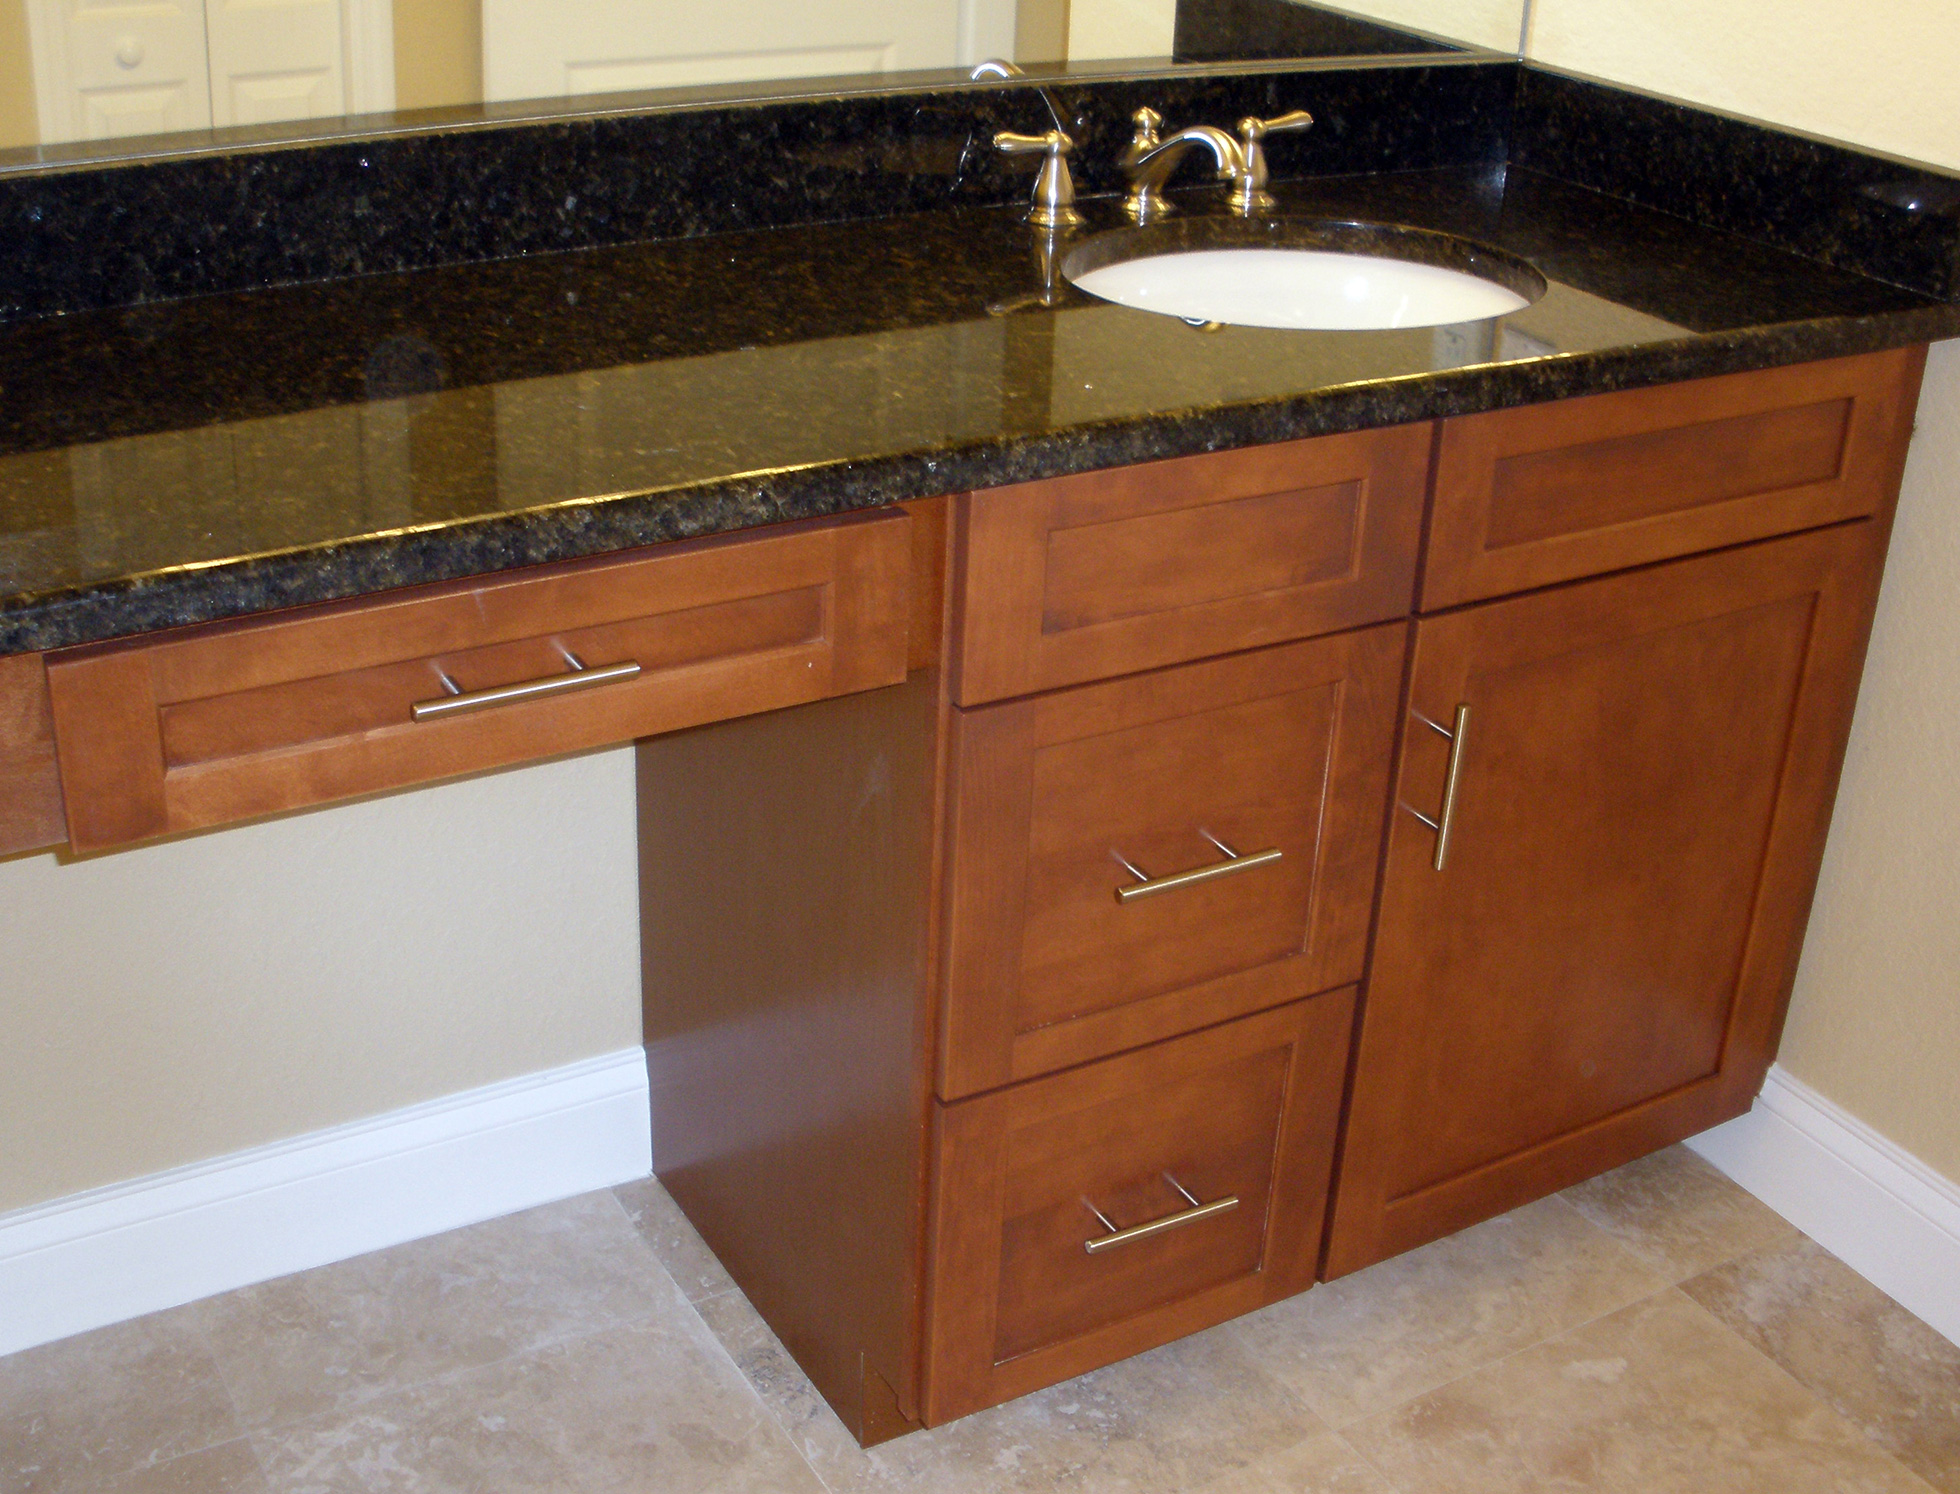 ... Vanity For Your Bathroom Home Improvement Guide Vanitys - Golime.co